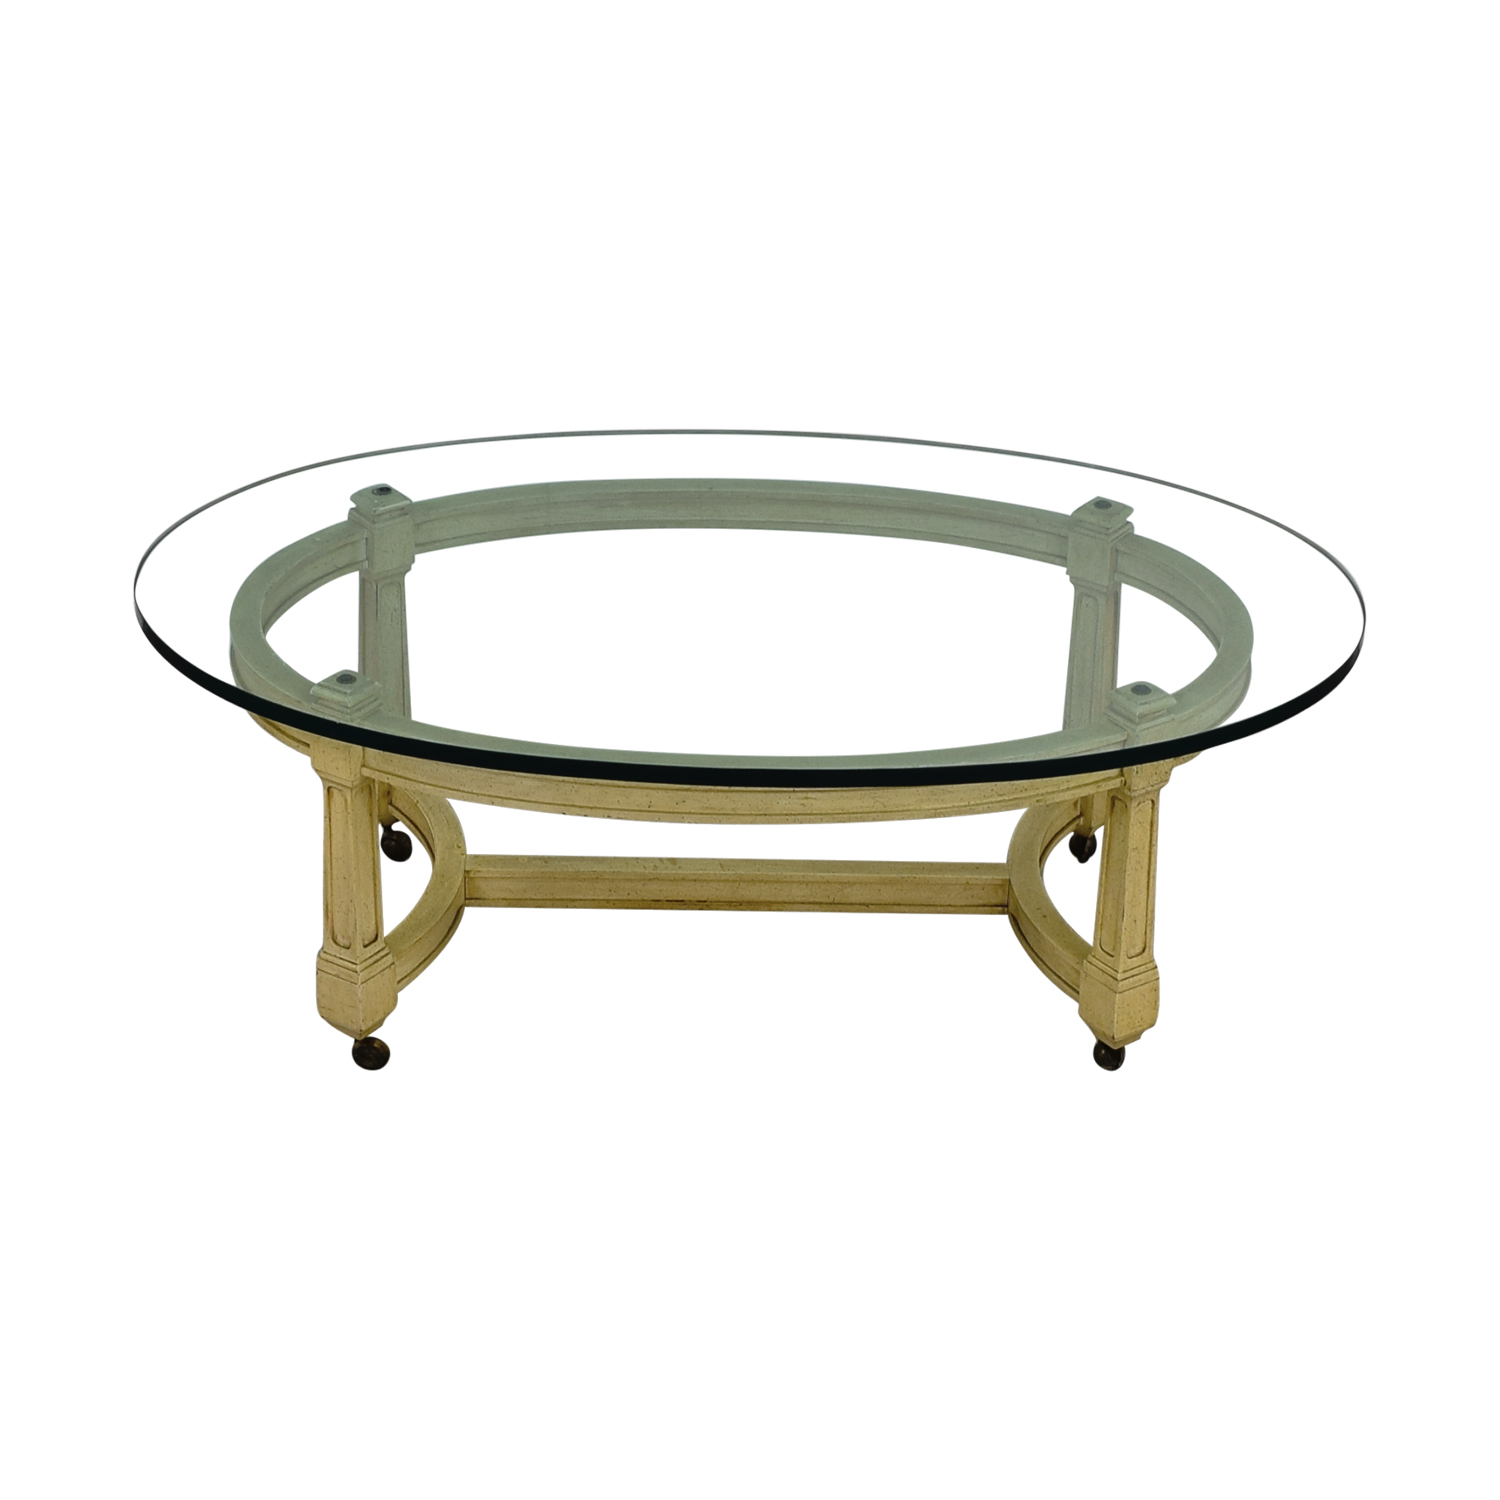 Off White and Glass Oval Coffee Table on Castors second hand